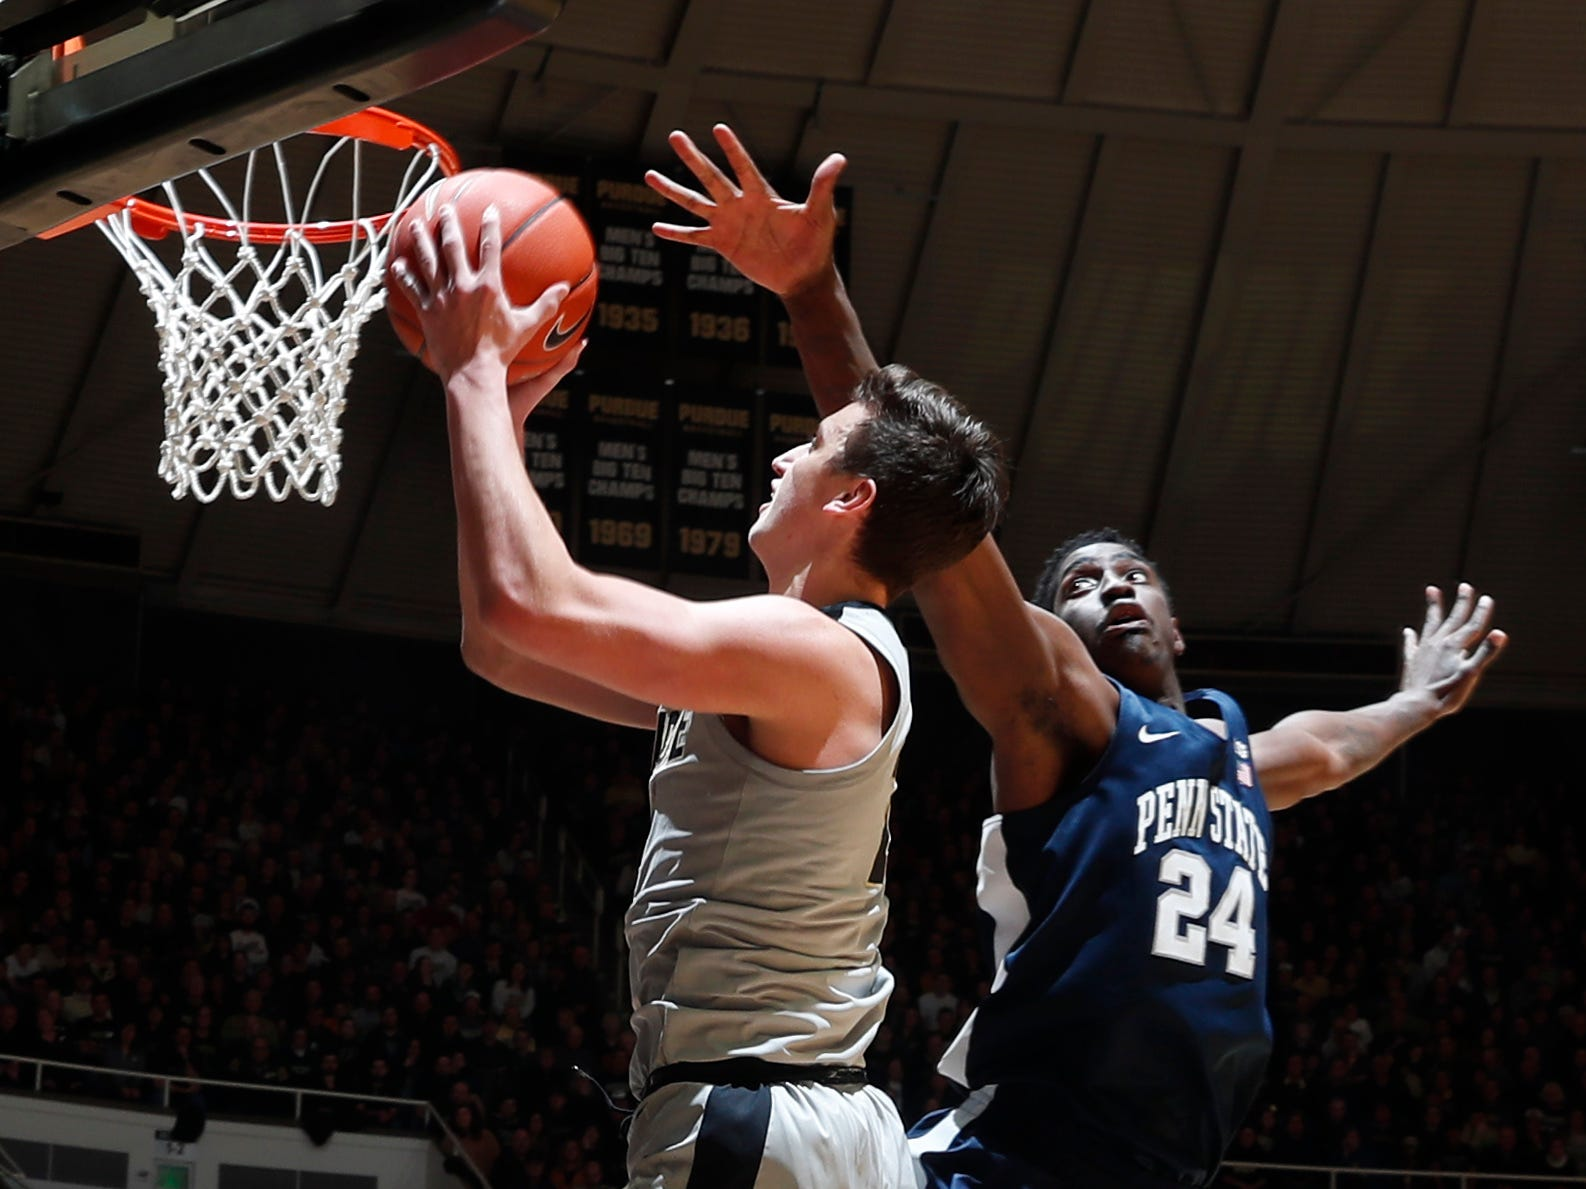 Feb 16, 2019; West Lafayette, IN, USA; Purdue Boilermakers forward Grady Eiftert (24) takes a shot against Penn State Nittany Lions forward Mike Watkins (24) during the second half at Mackey Arena. Mandatory Credit: Brian Spurlock-USA TODAY Sports